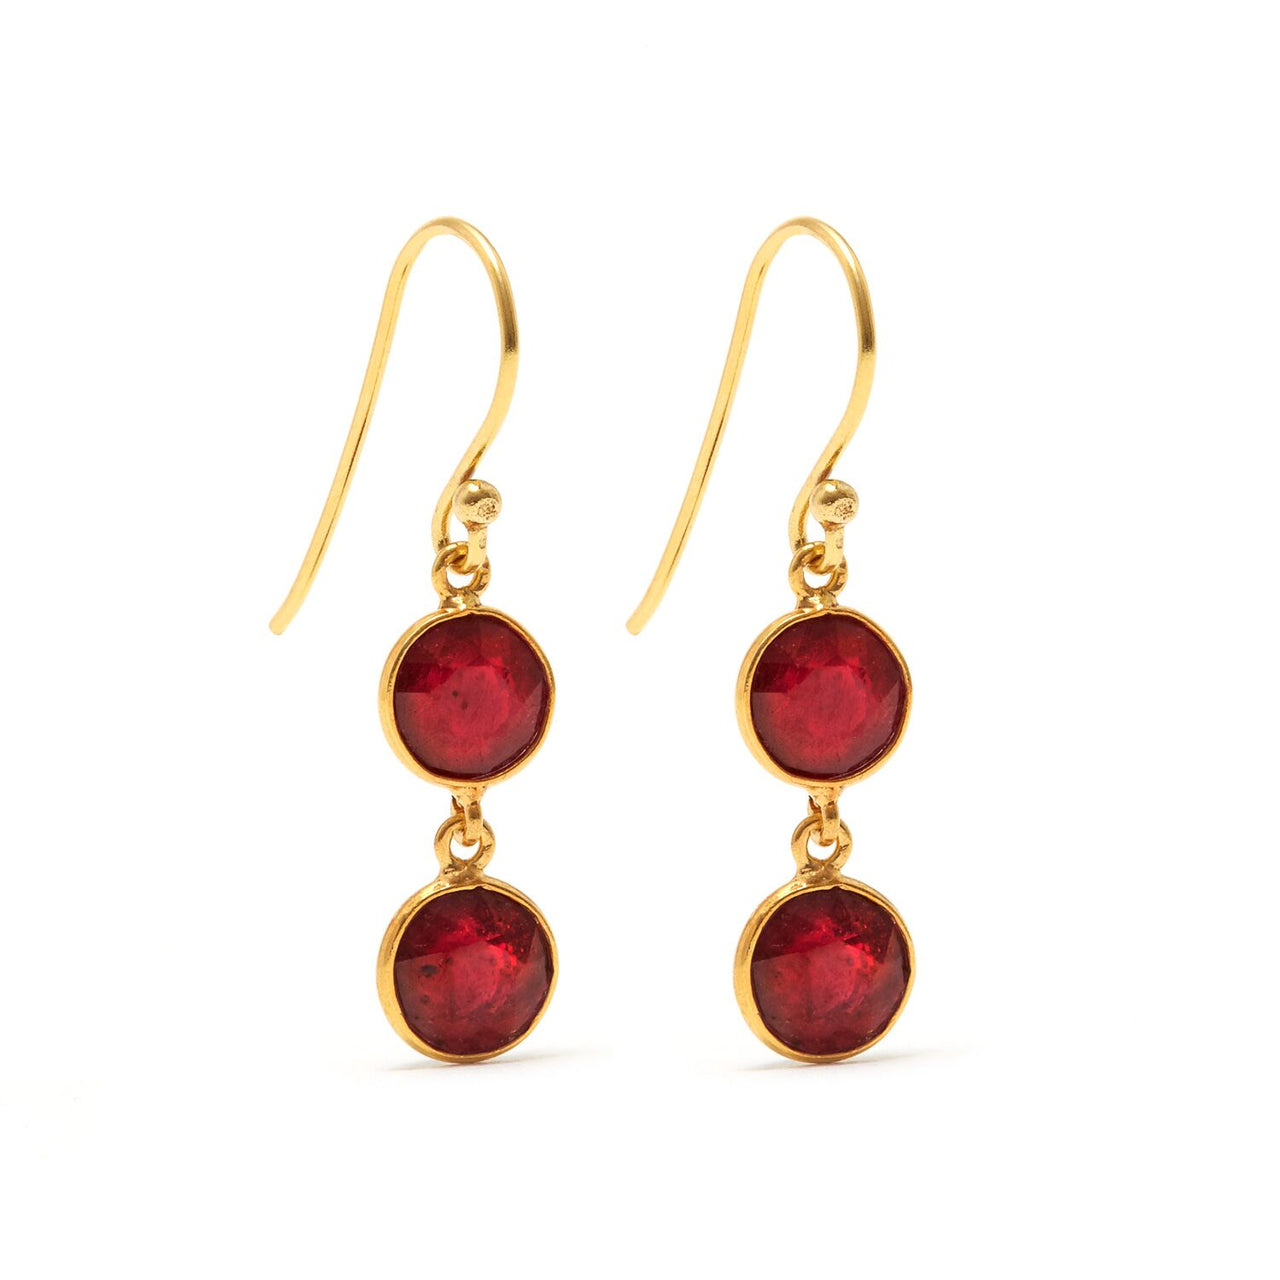 Jaipur Atelier Ruby Rush 2 Petit Drop Earrings